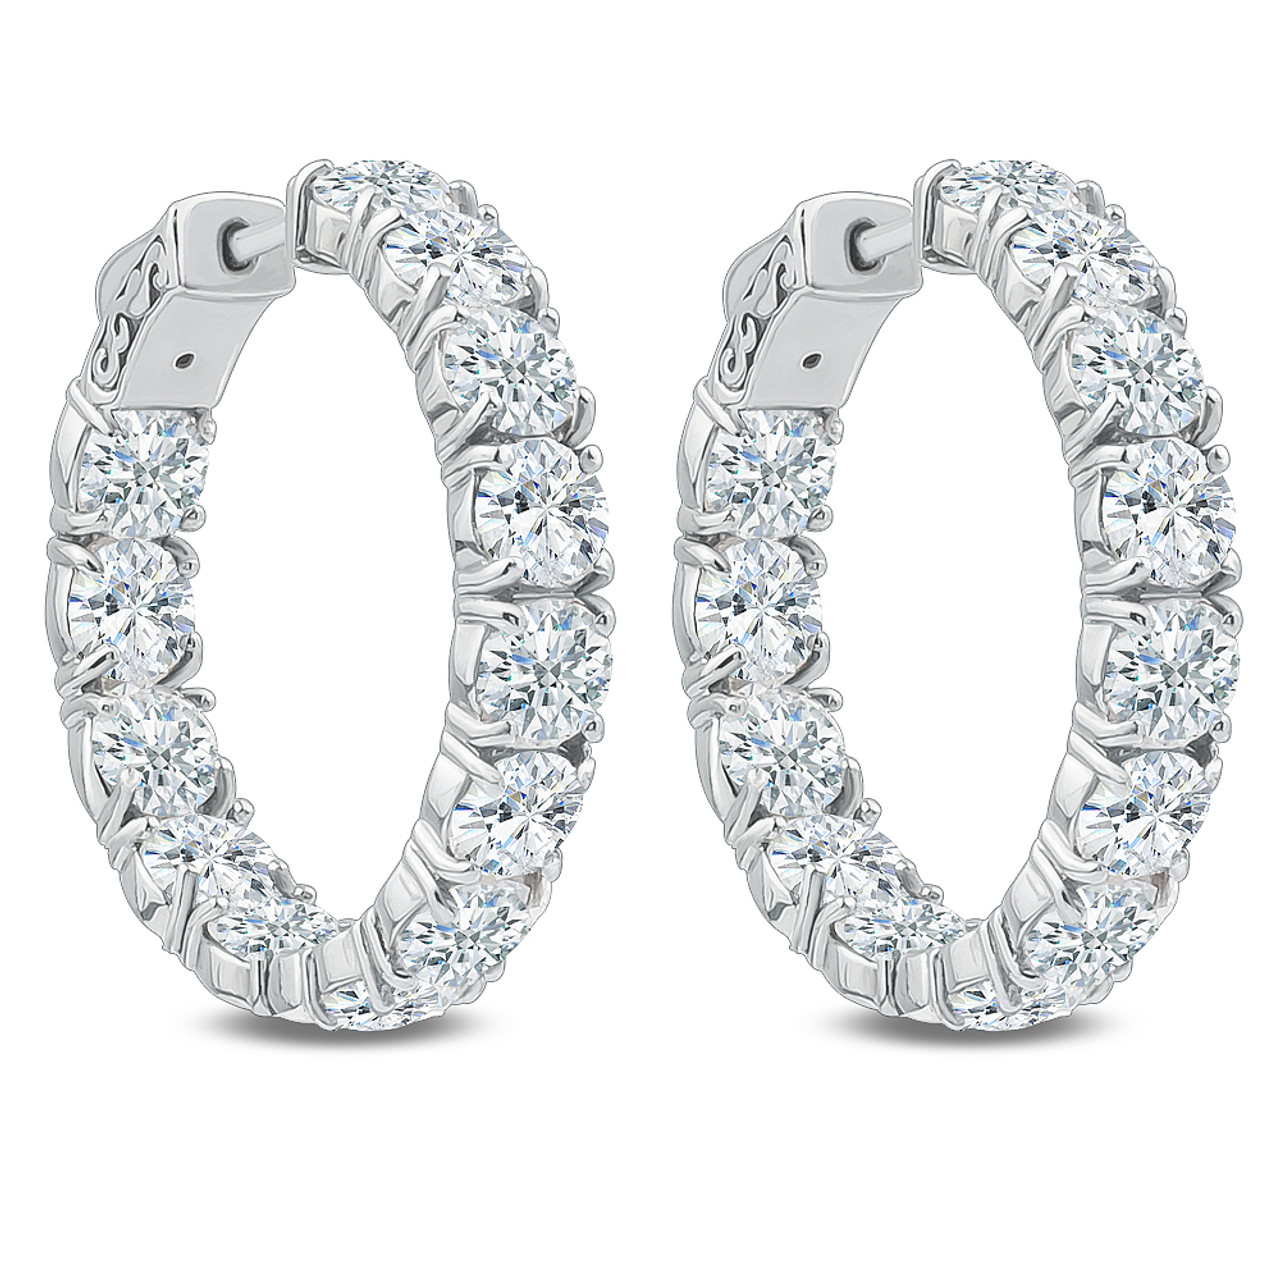 Bellamy Inside Out Rounds Cz Earring Hoops, 130 Carats Total